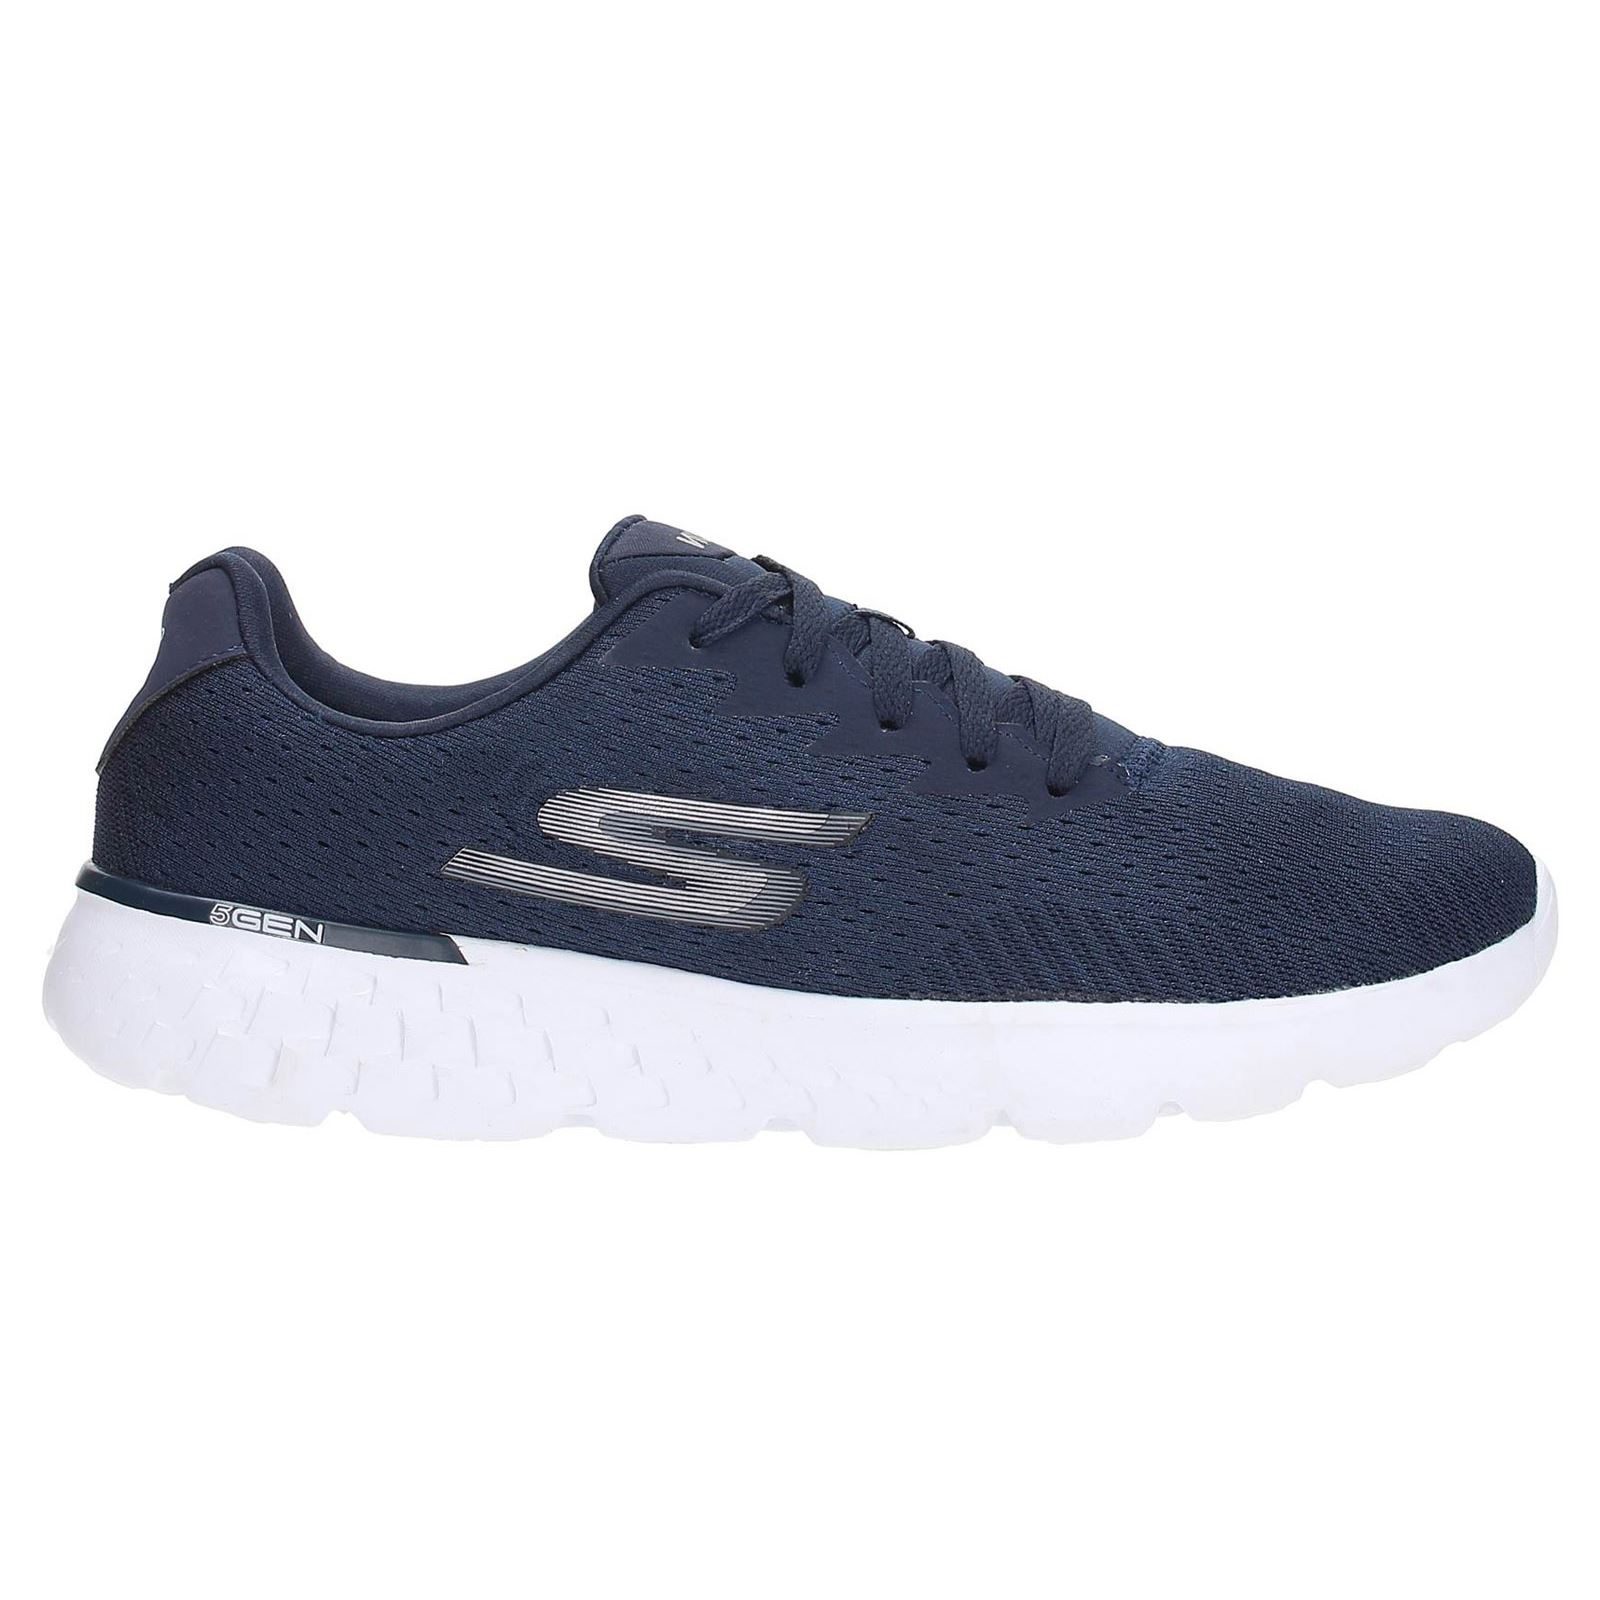 skechers go run 400. description: skechers go run 400-generate 400